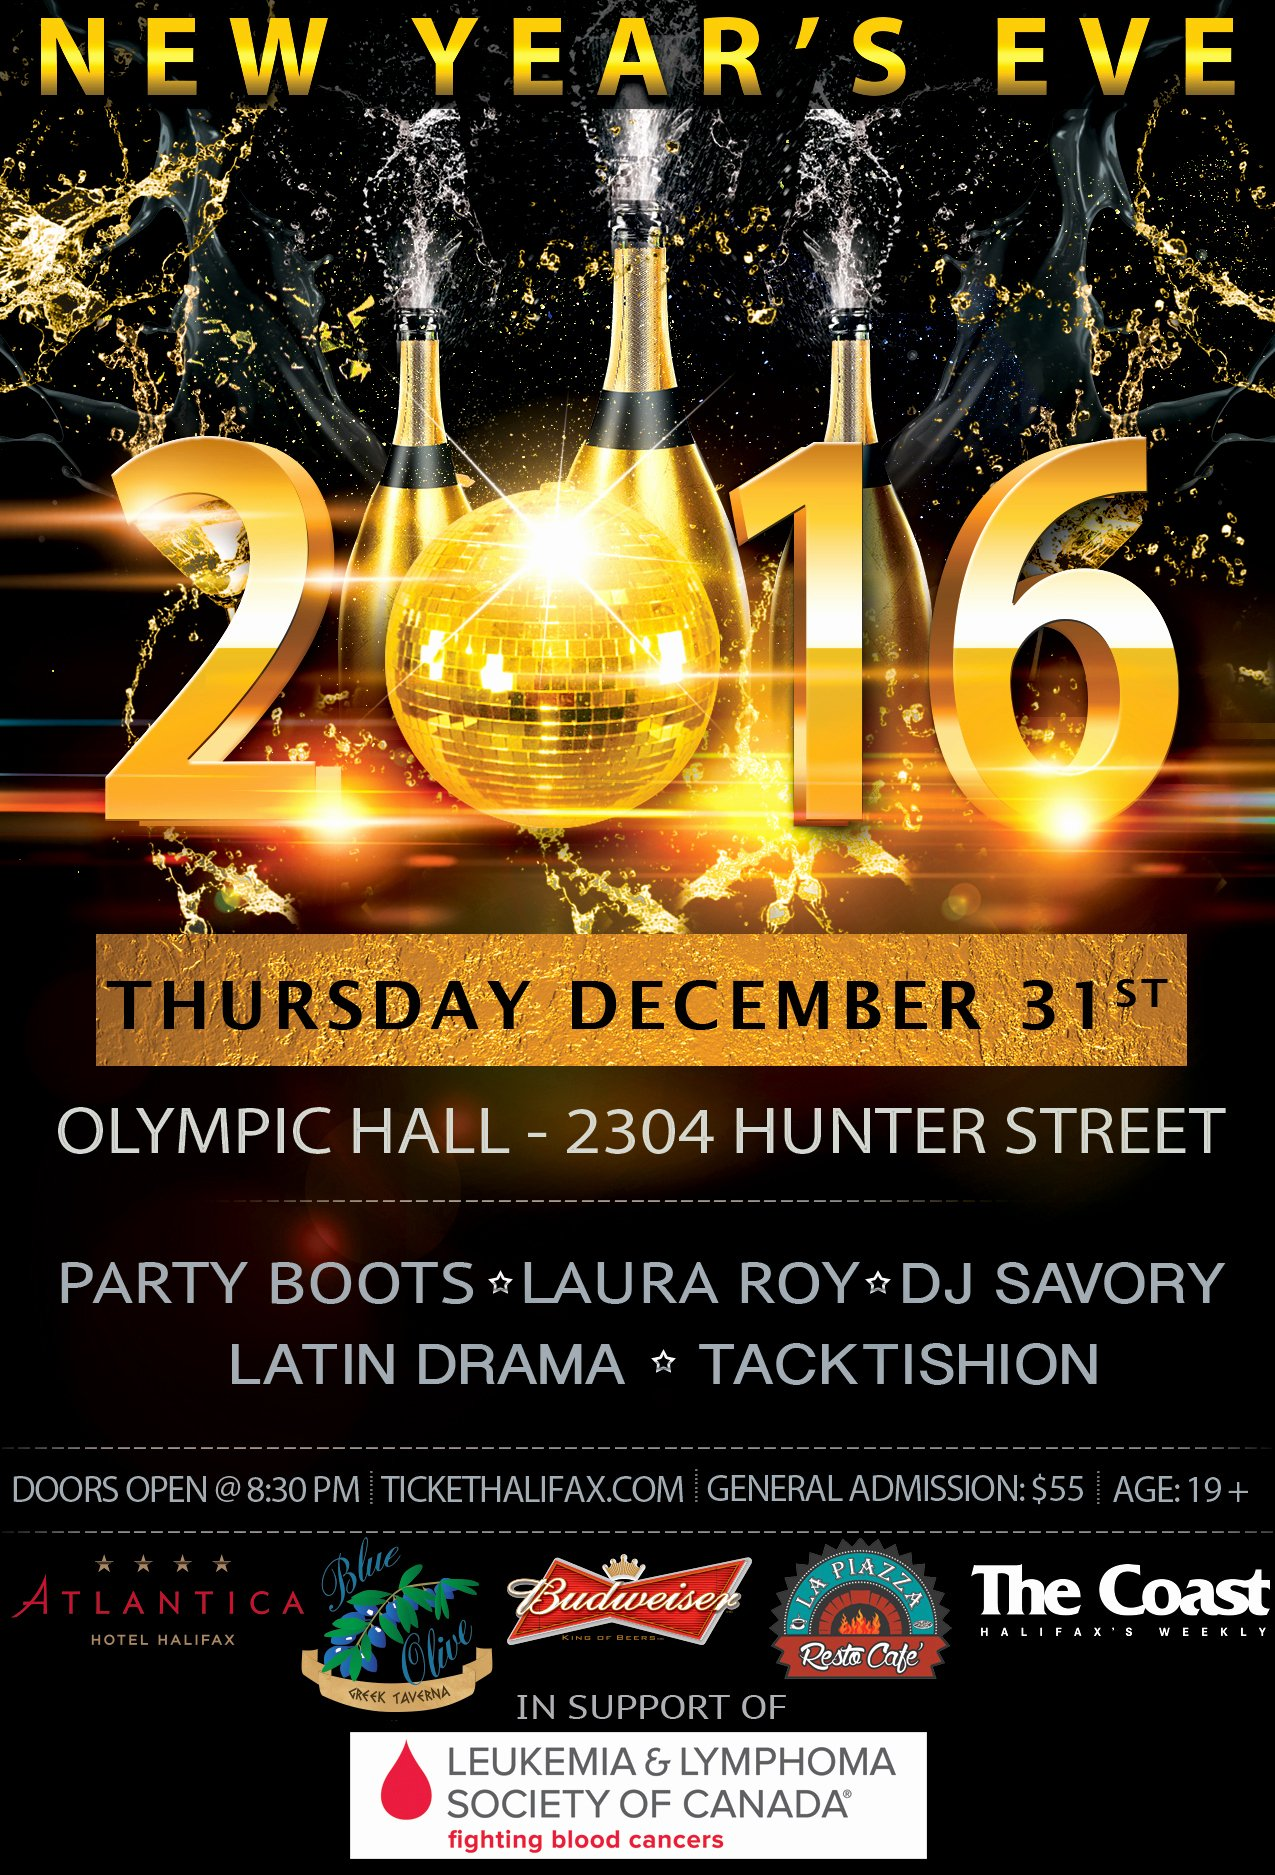 New Years Eve Flyer New New Year S Eve 2016 Party Boots Dj Savoury & Special